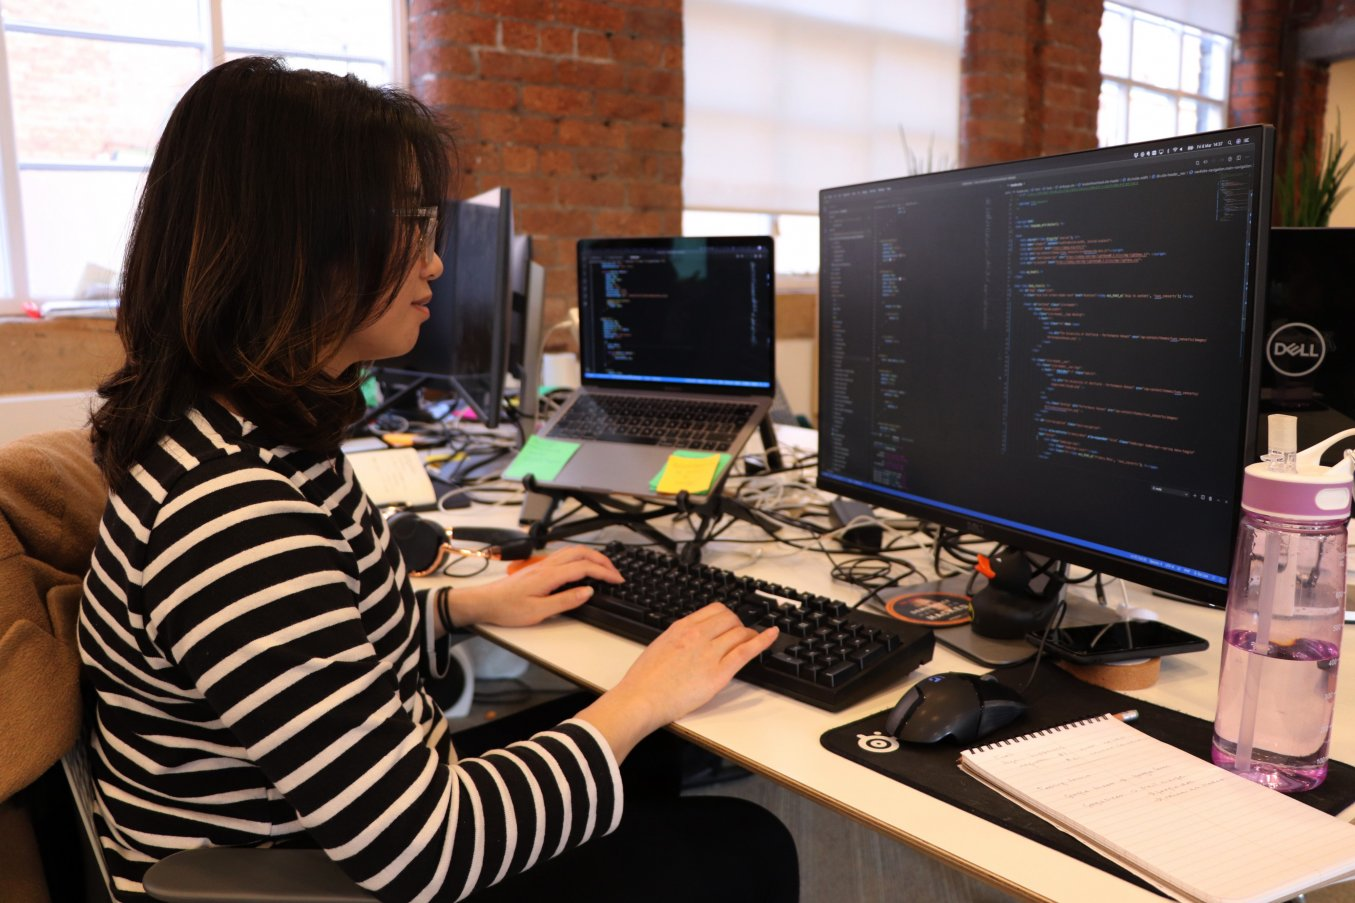 Ana, our first female developer